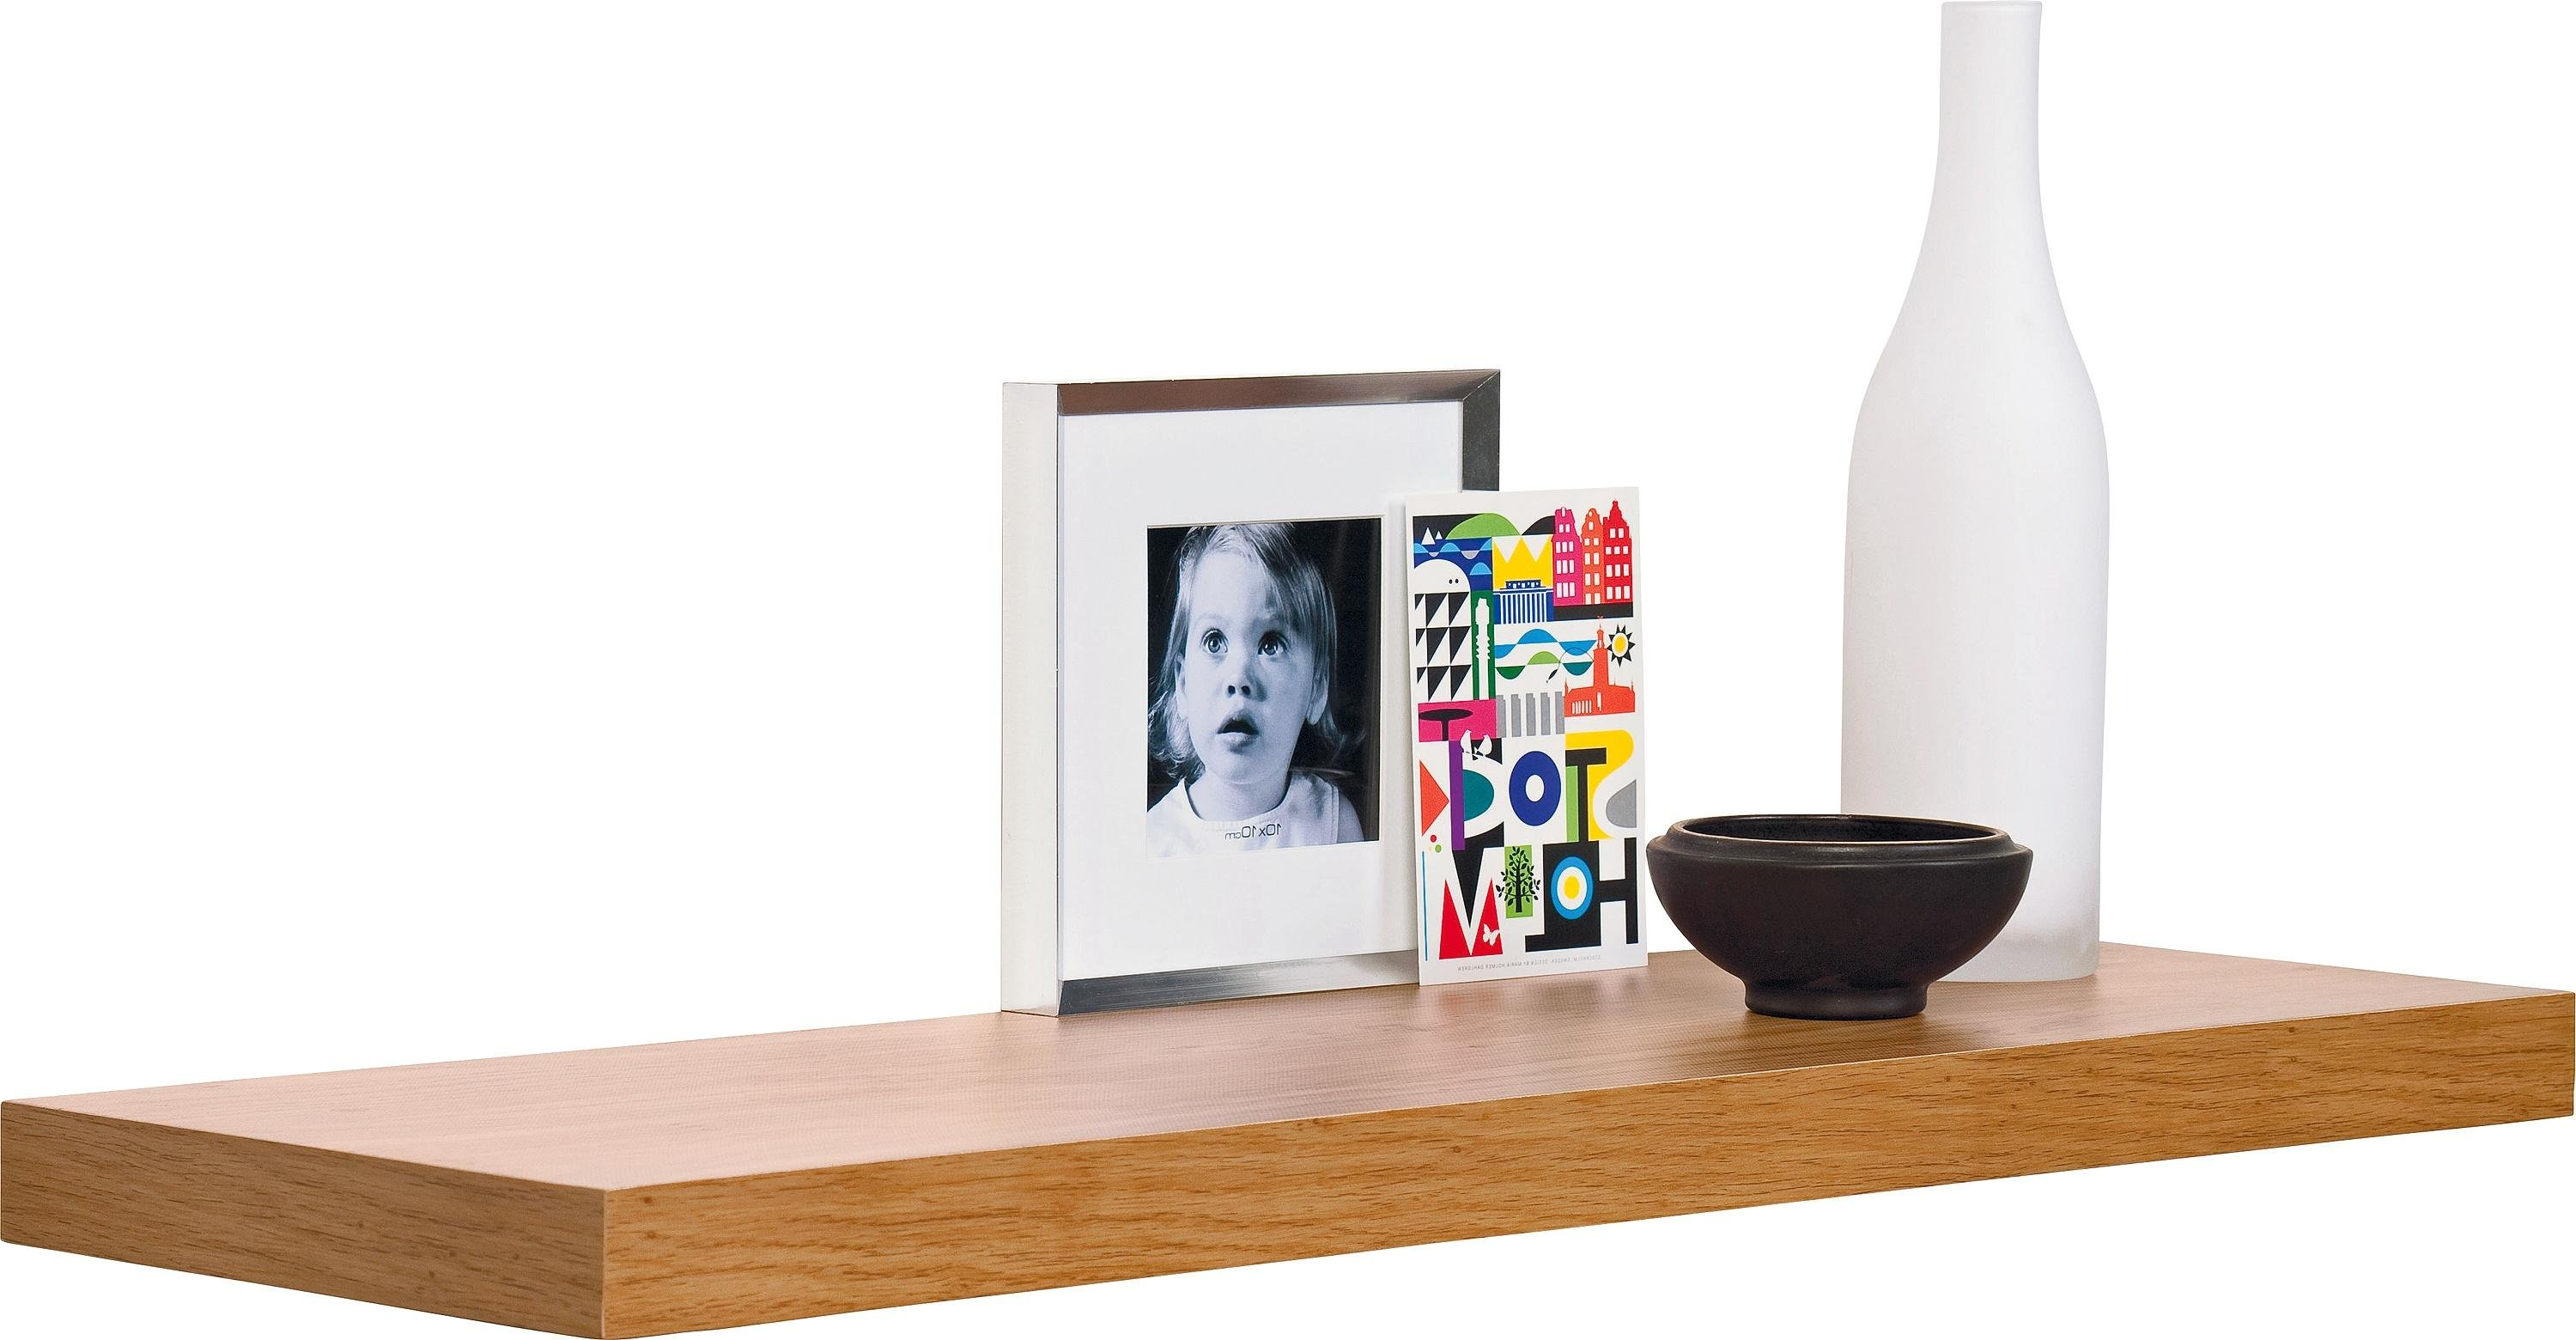 results for floating shelves in home and garden storage wall rh argos co uk Modern White Floating Shelves Small Floating White Shelves